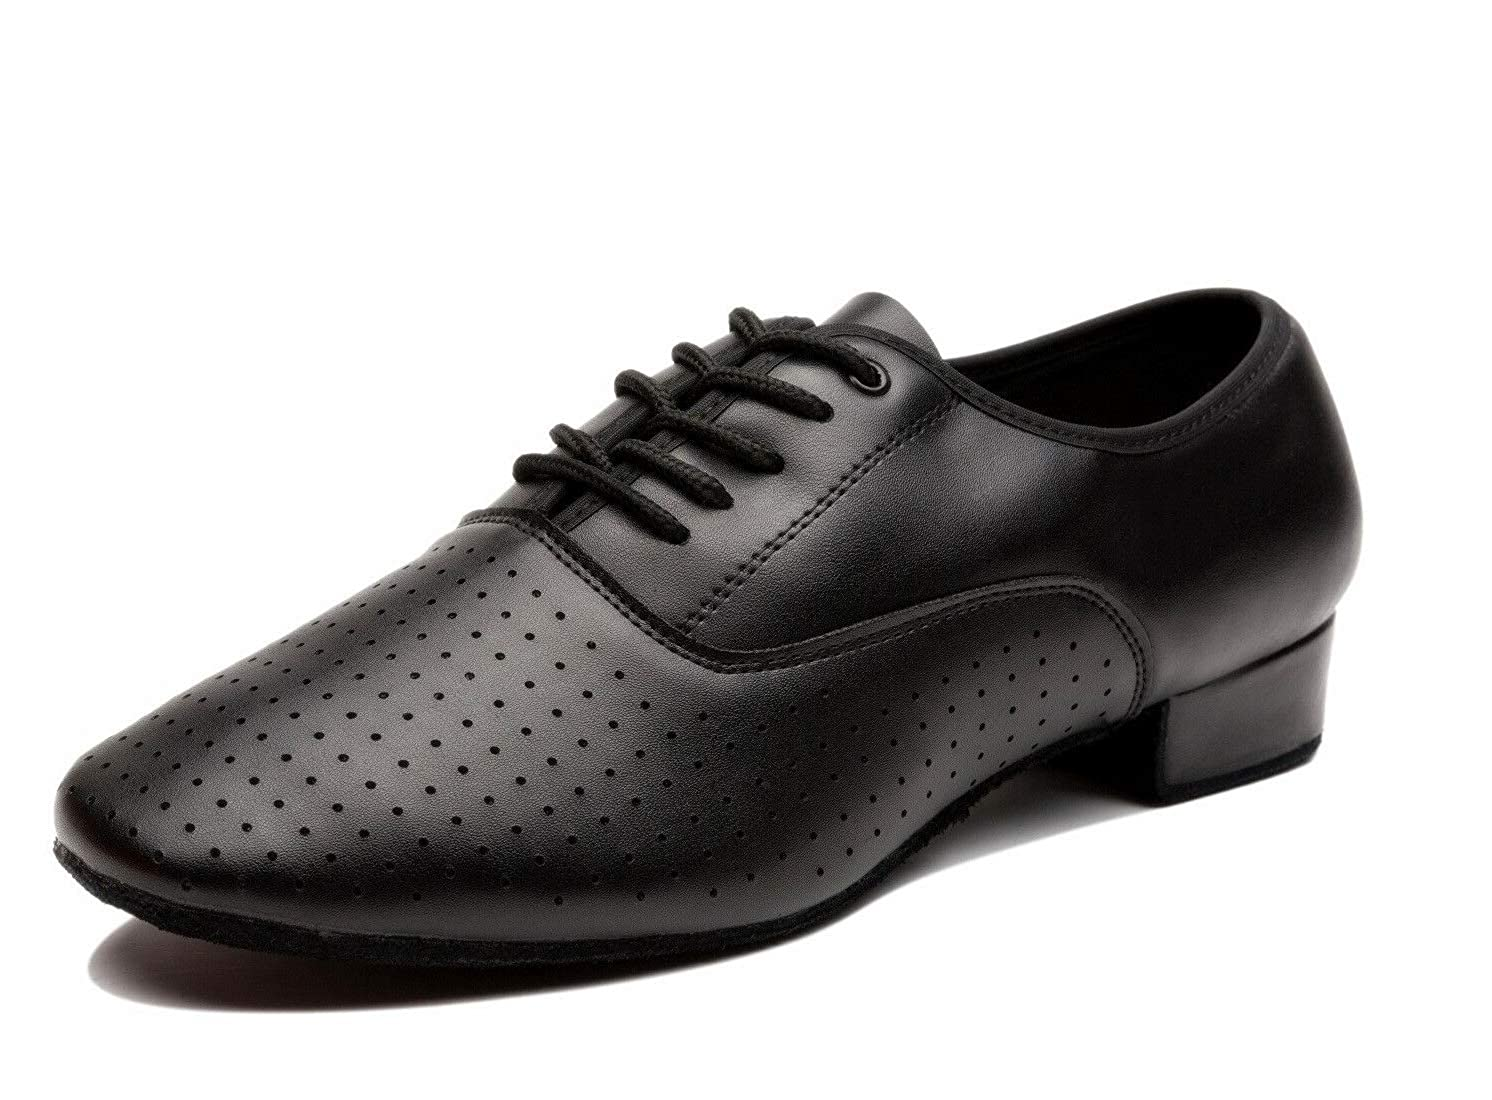 M Tango,Ballroom,Viennese Waltz US NLeahershoe Breathable Lace-up Dancing Leather Latin Shoes for Men Salsa 7.5 D